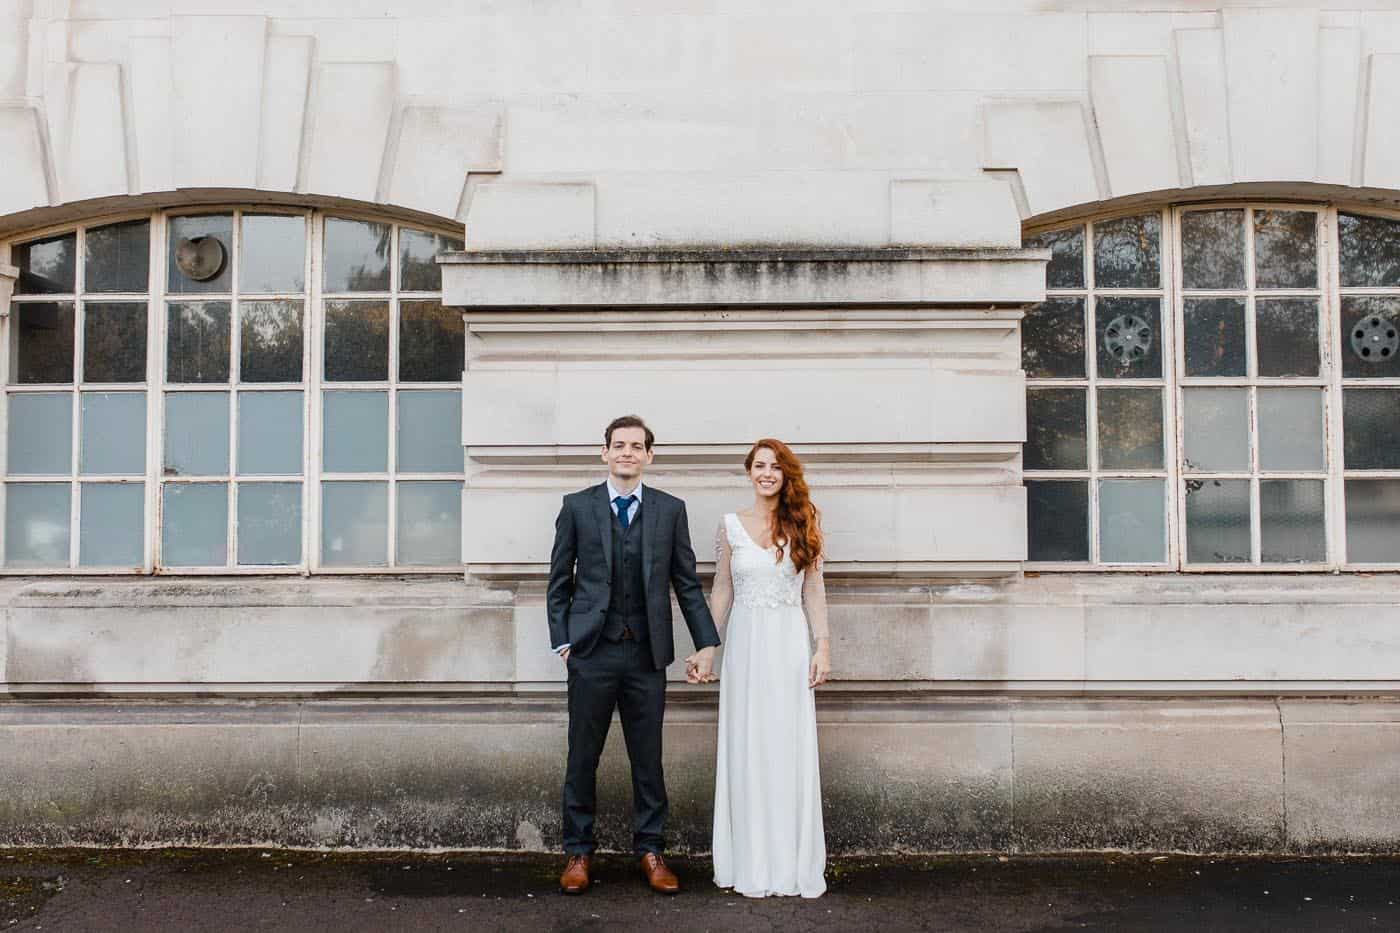 couple in front of building